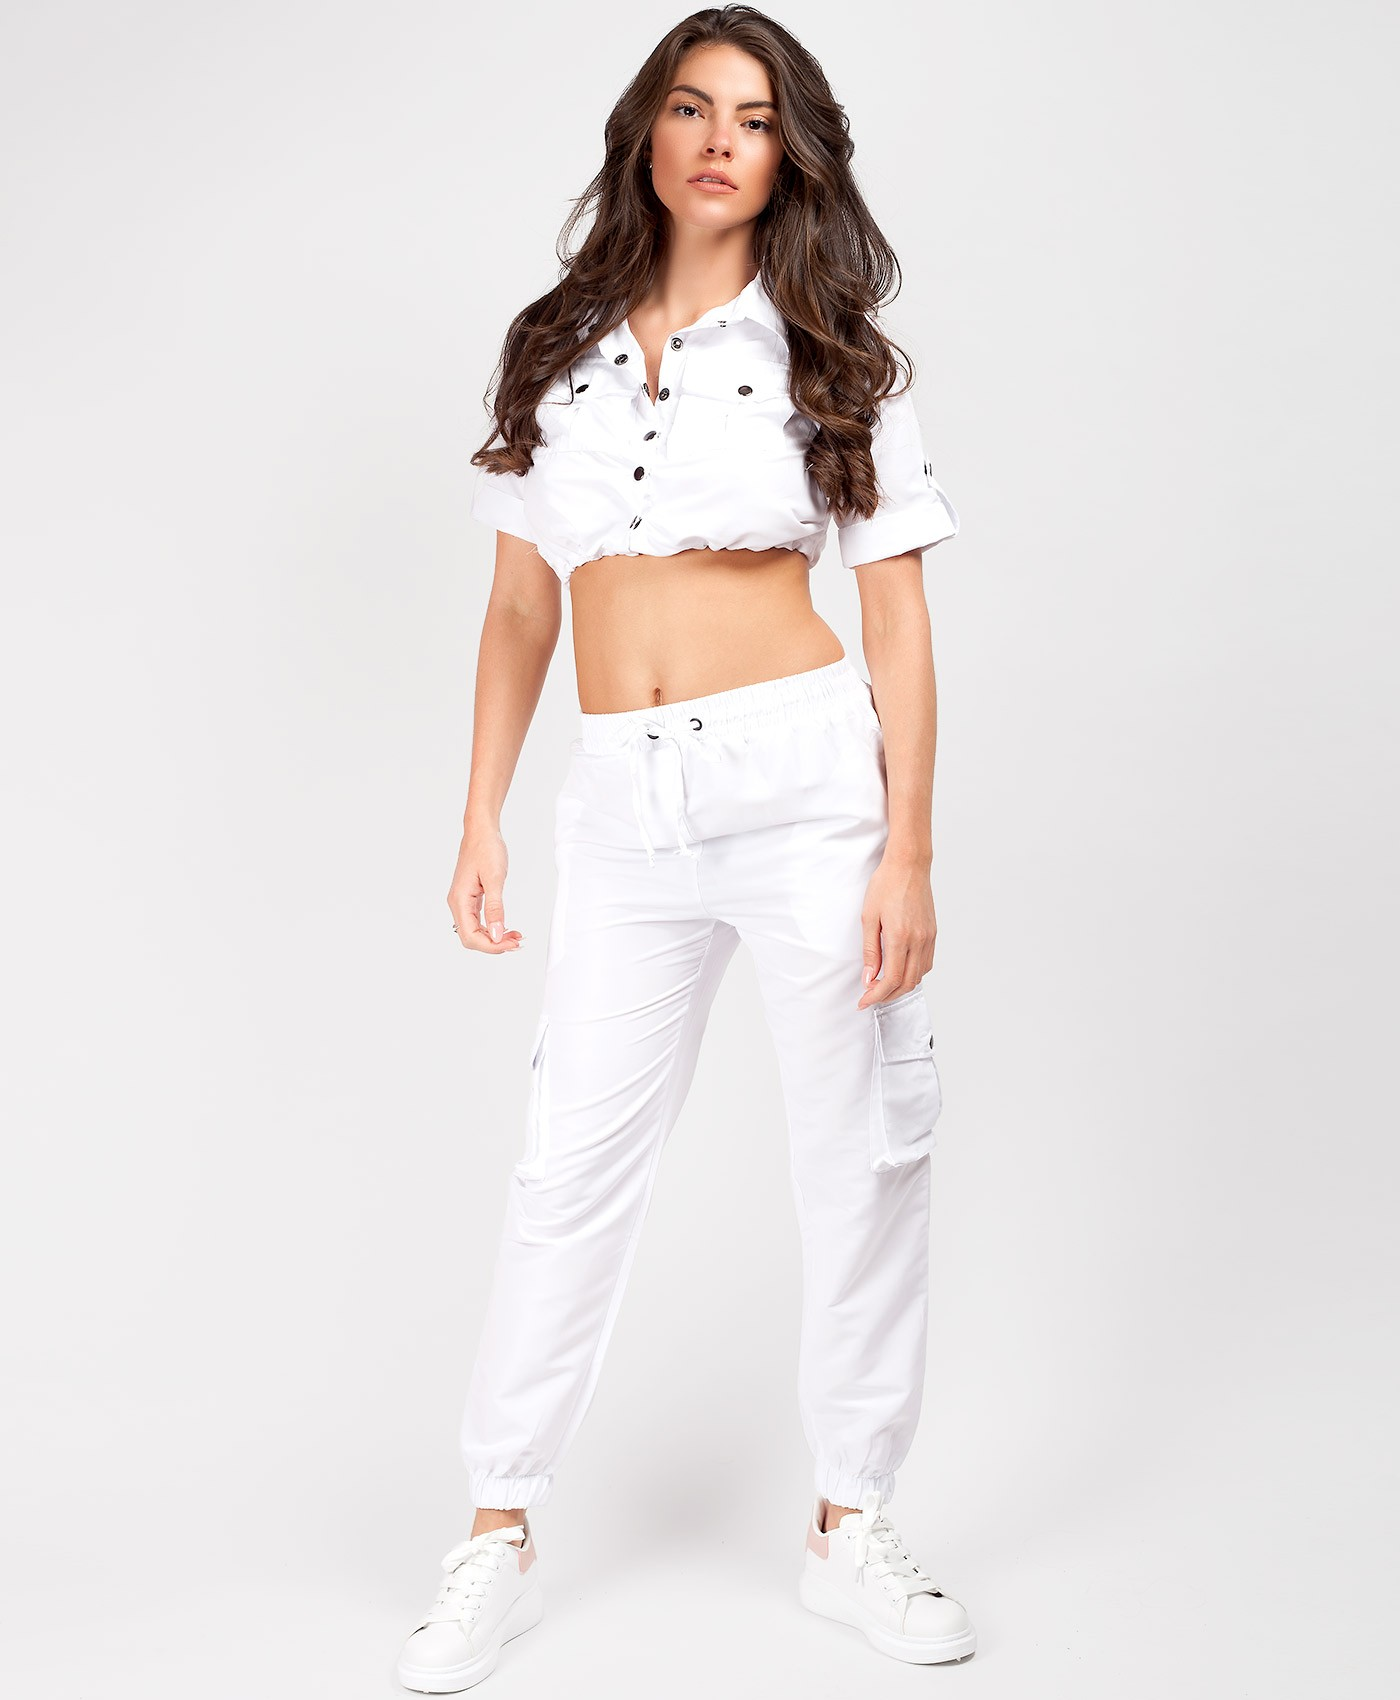 White-Utility-Crop-Top-Cargo-Pants-Co-Ord-Set-1